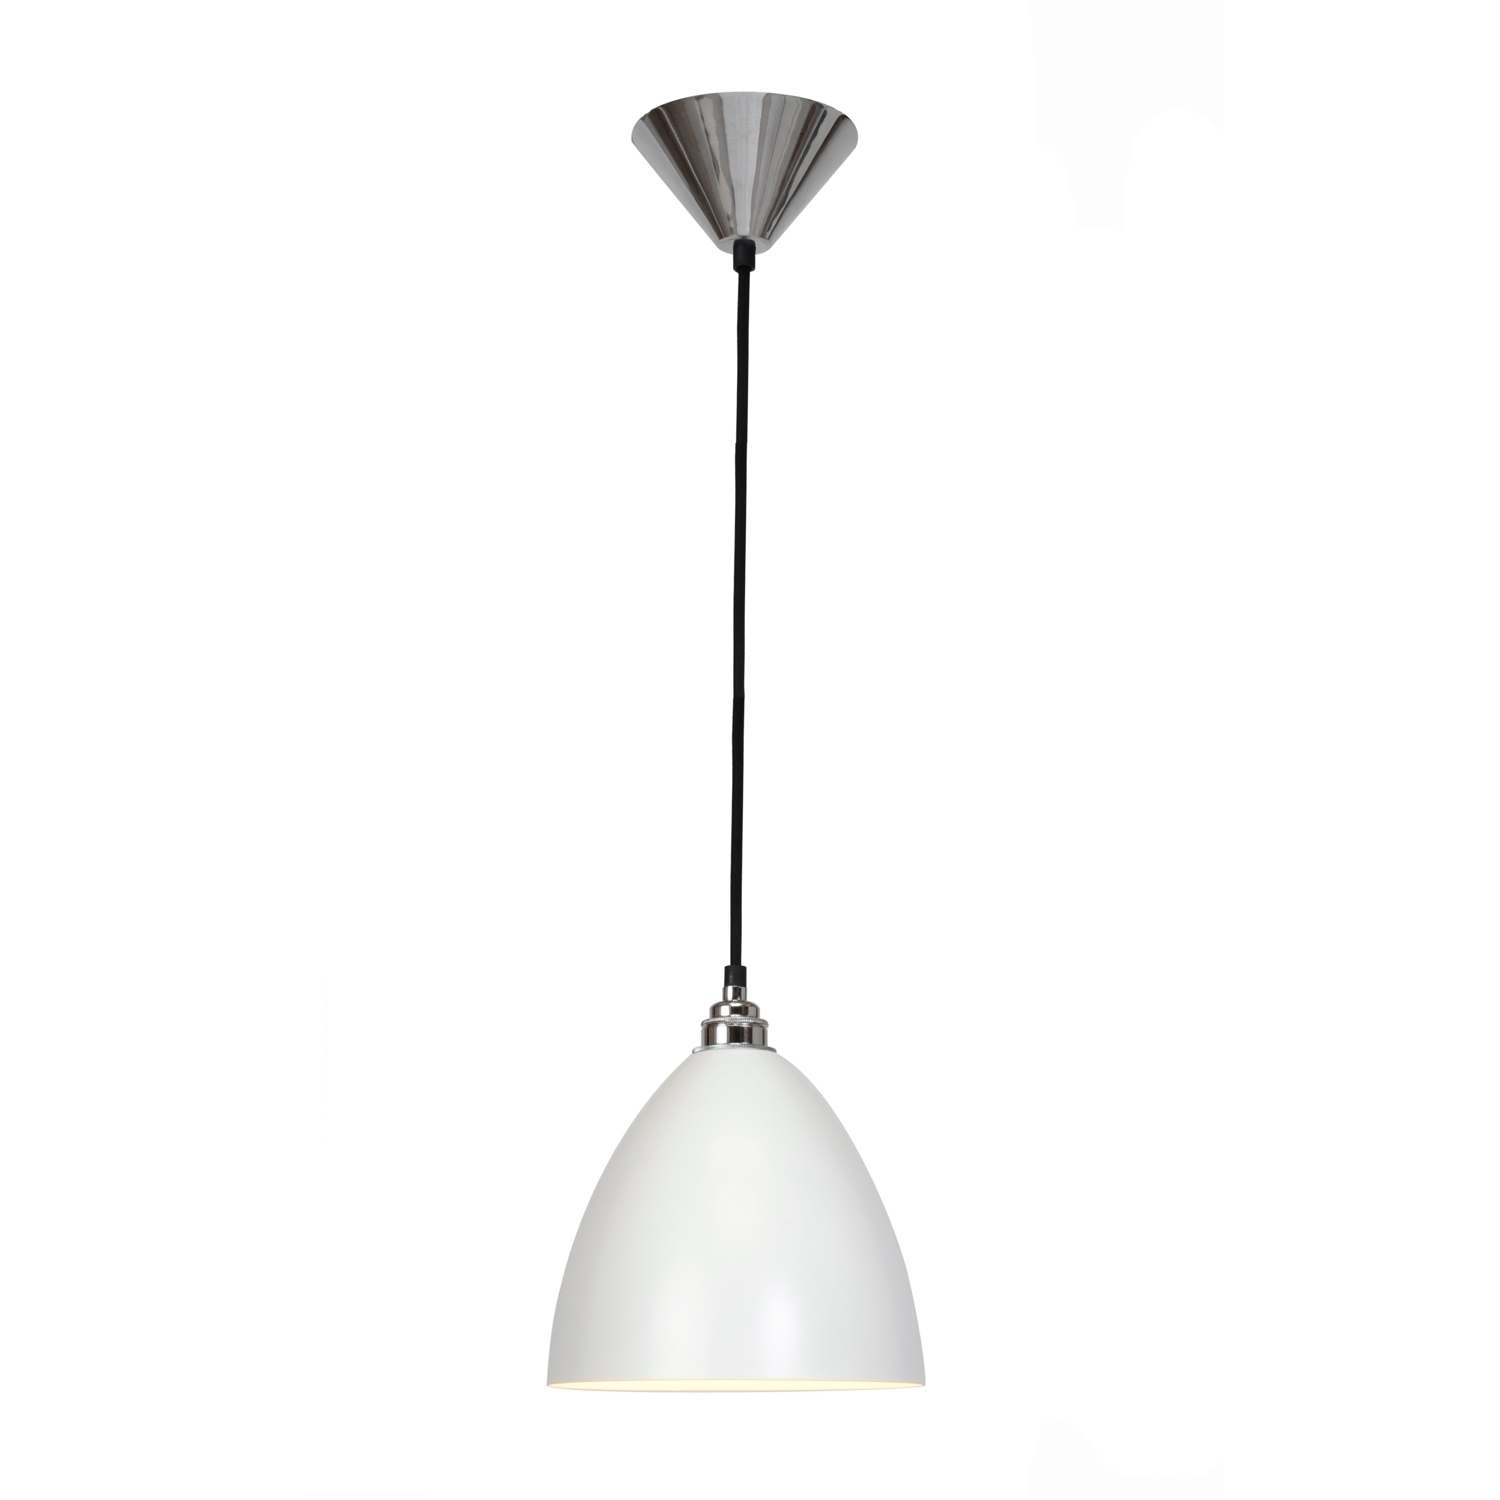 suspended lighting fixtures.  suspended original btc task pendant light white to suspended lighting fixtures